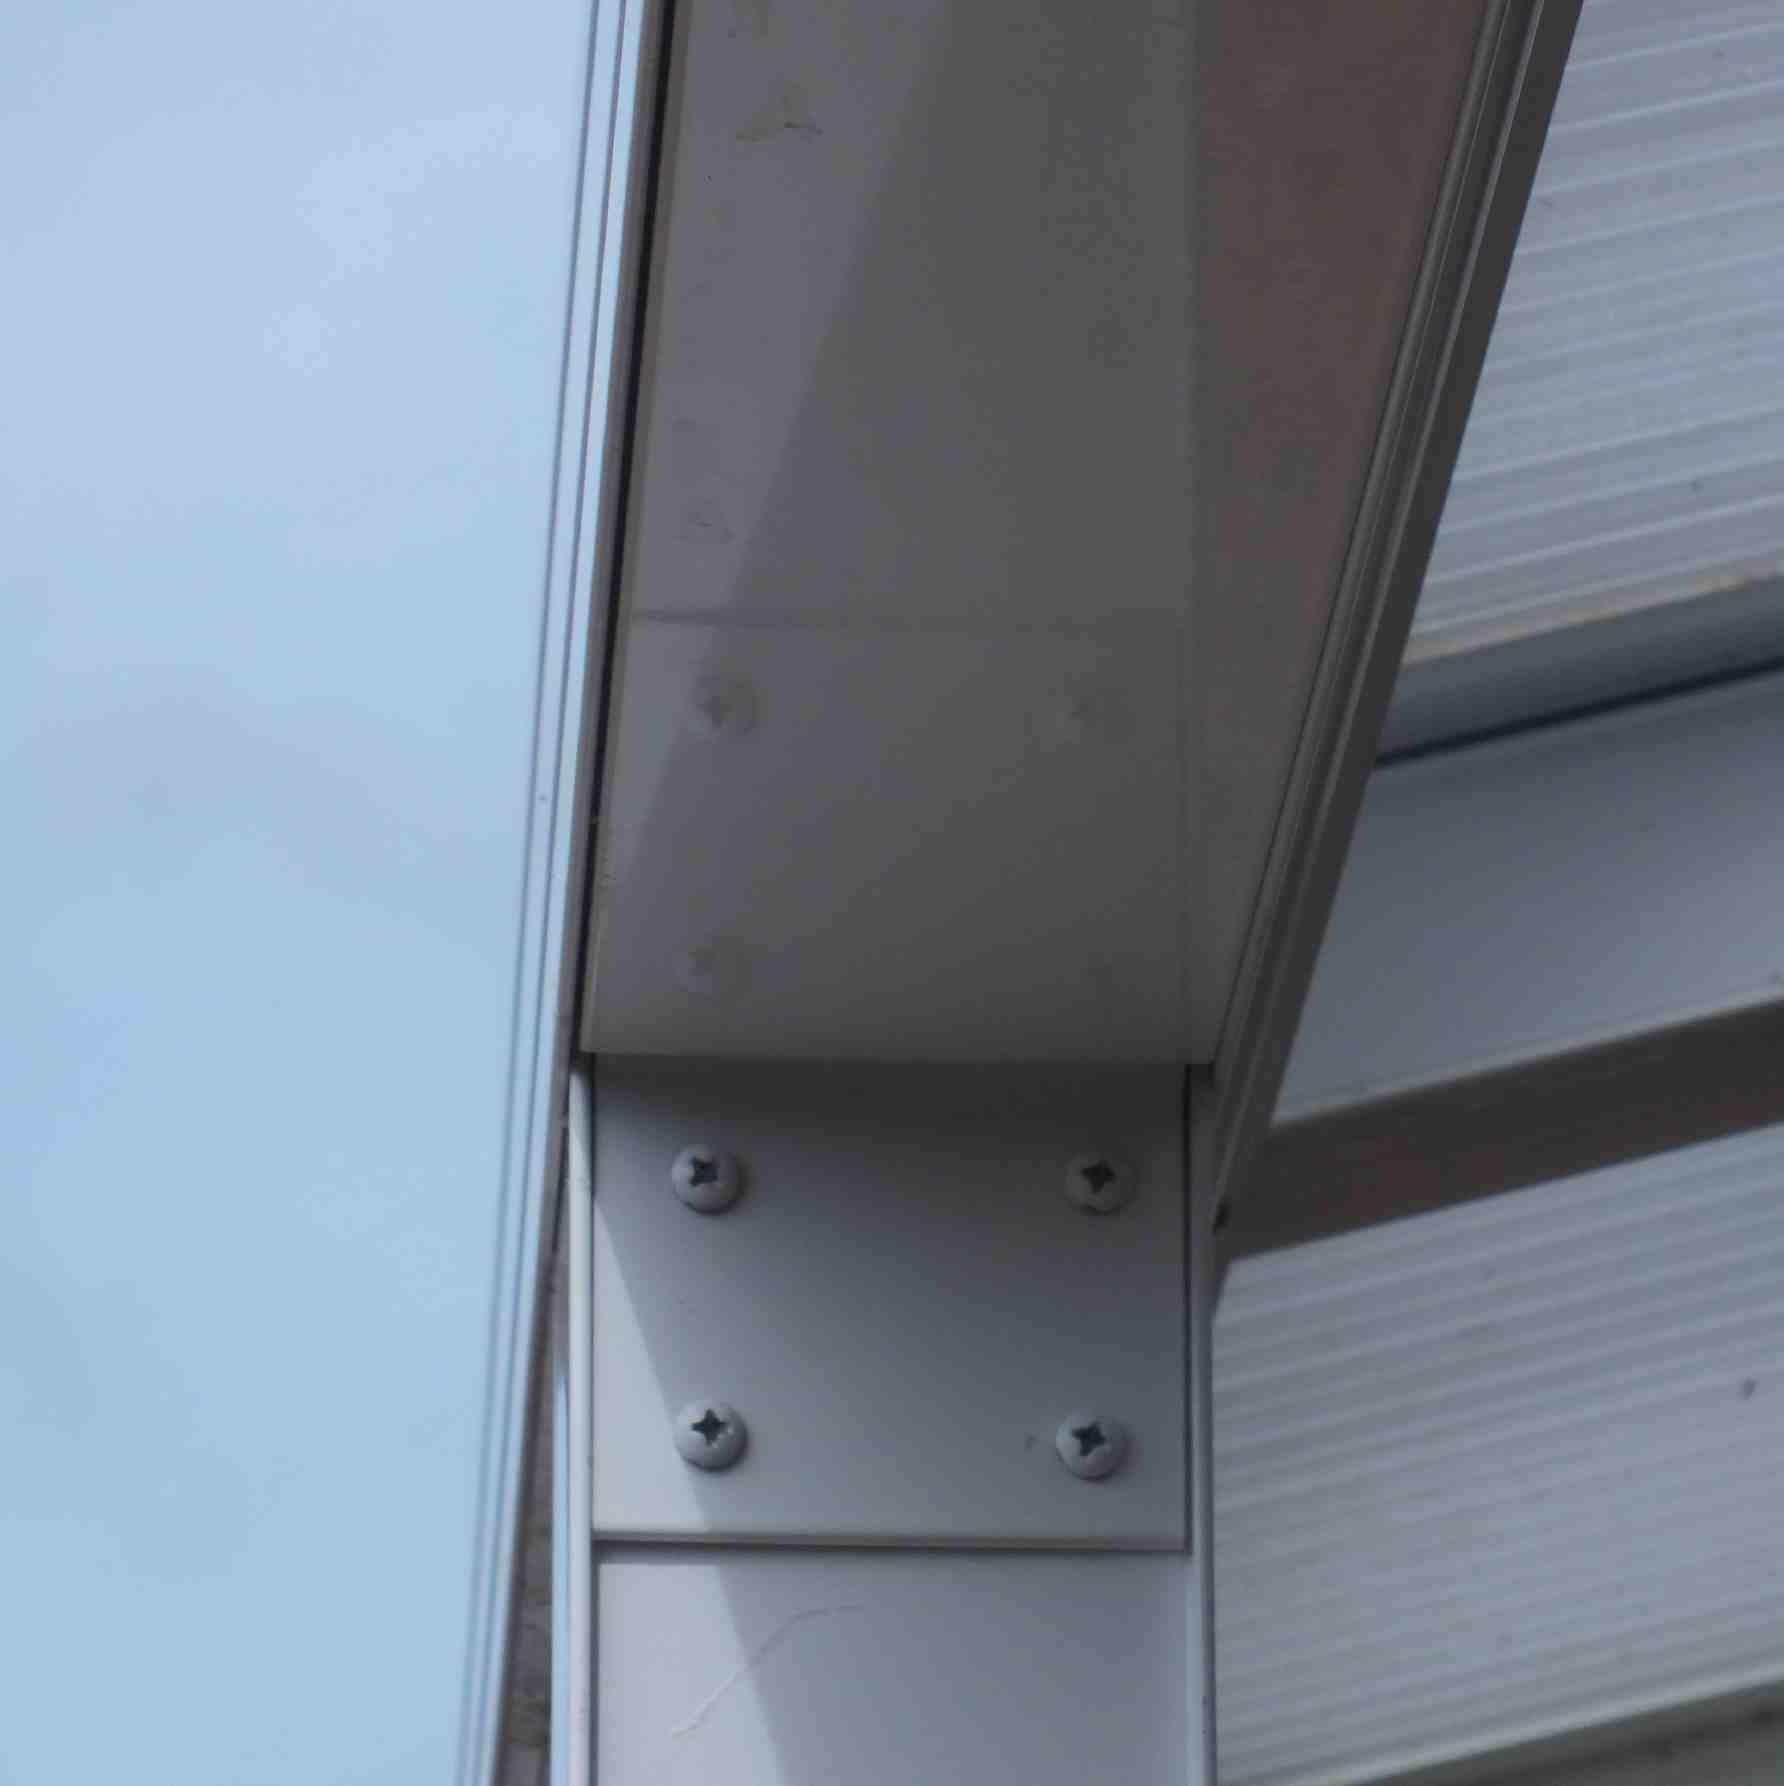 Affordable Omega Verandah with 16mm Polycarbonate Glazing - 3.1m (W) x 1.5m (P), (2) Supporting Posts